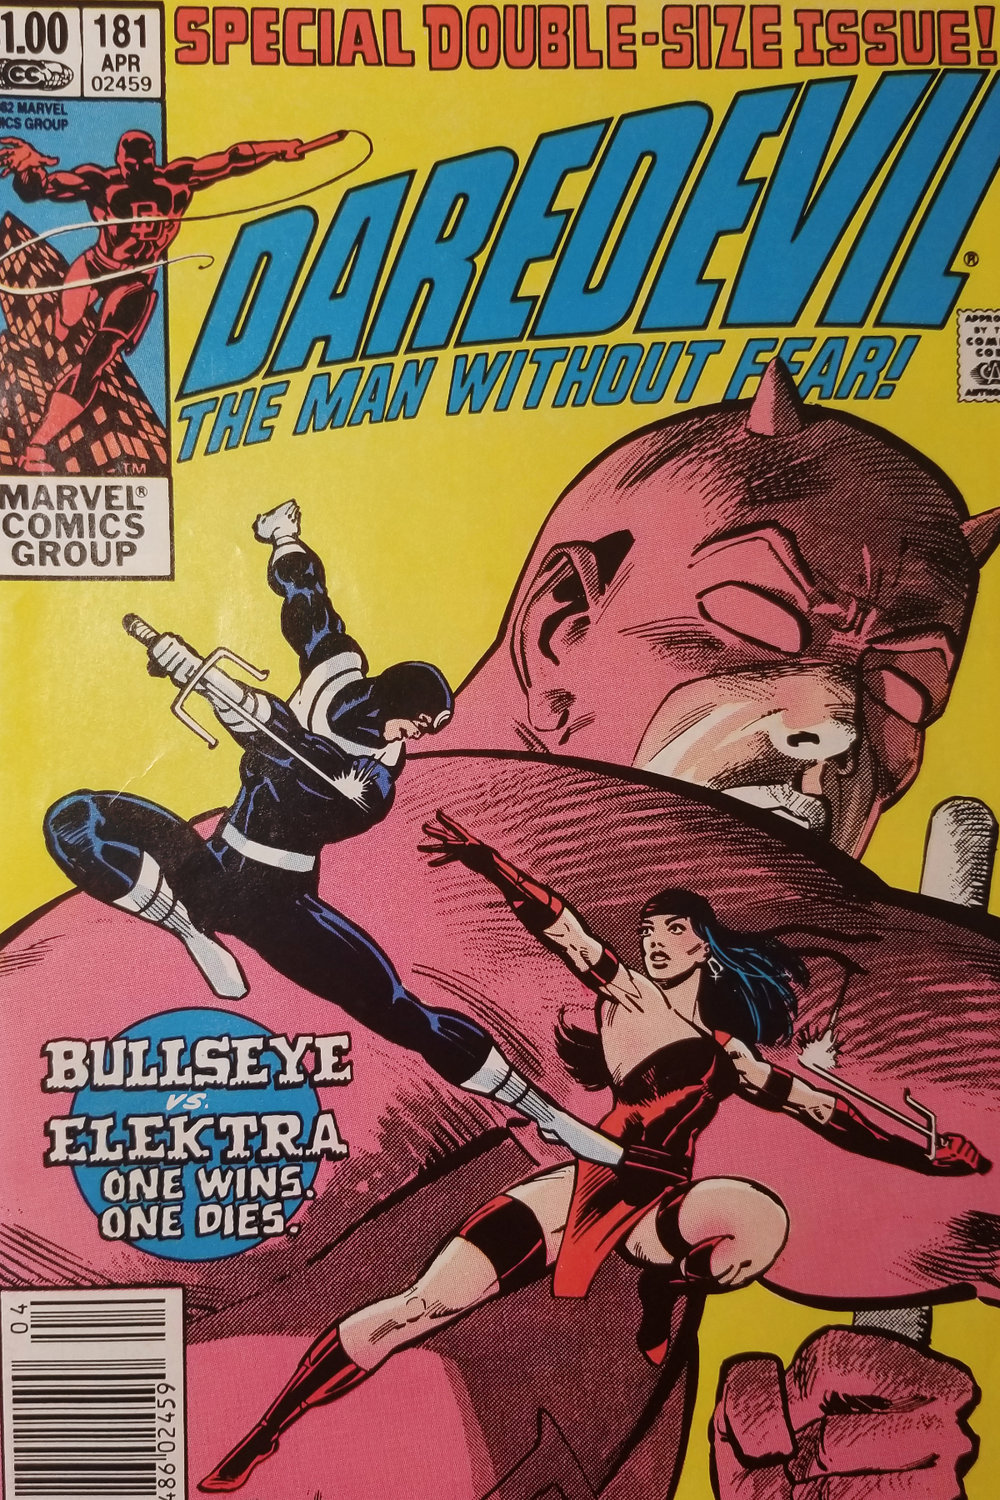 COMICS_MARVEL_DAREDEVIL_181.jpg